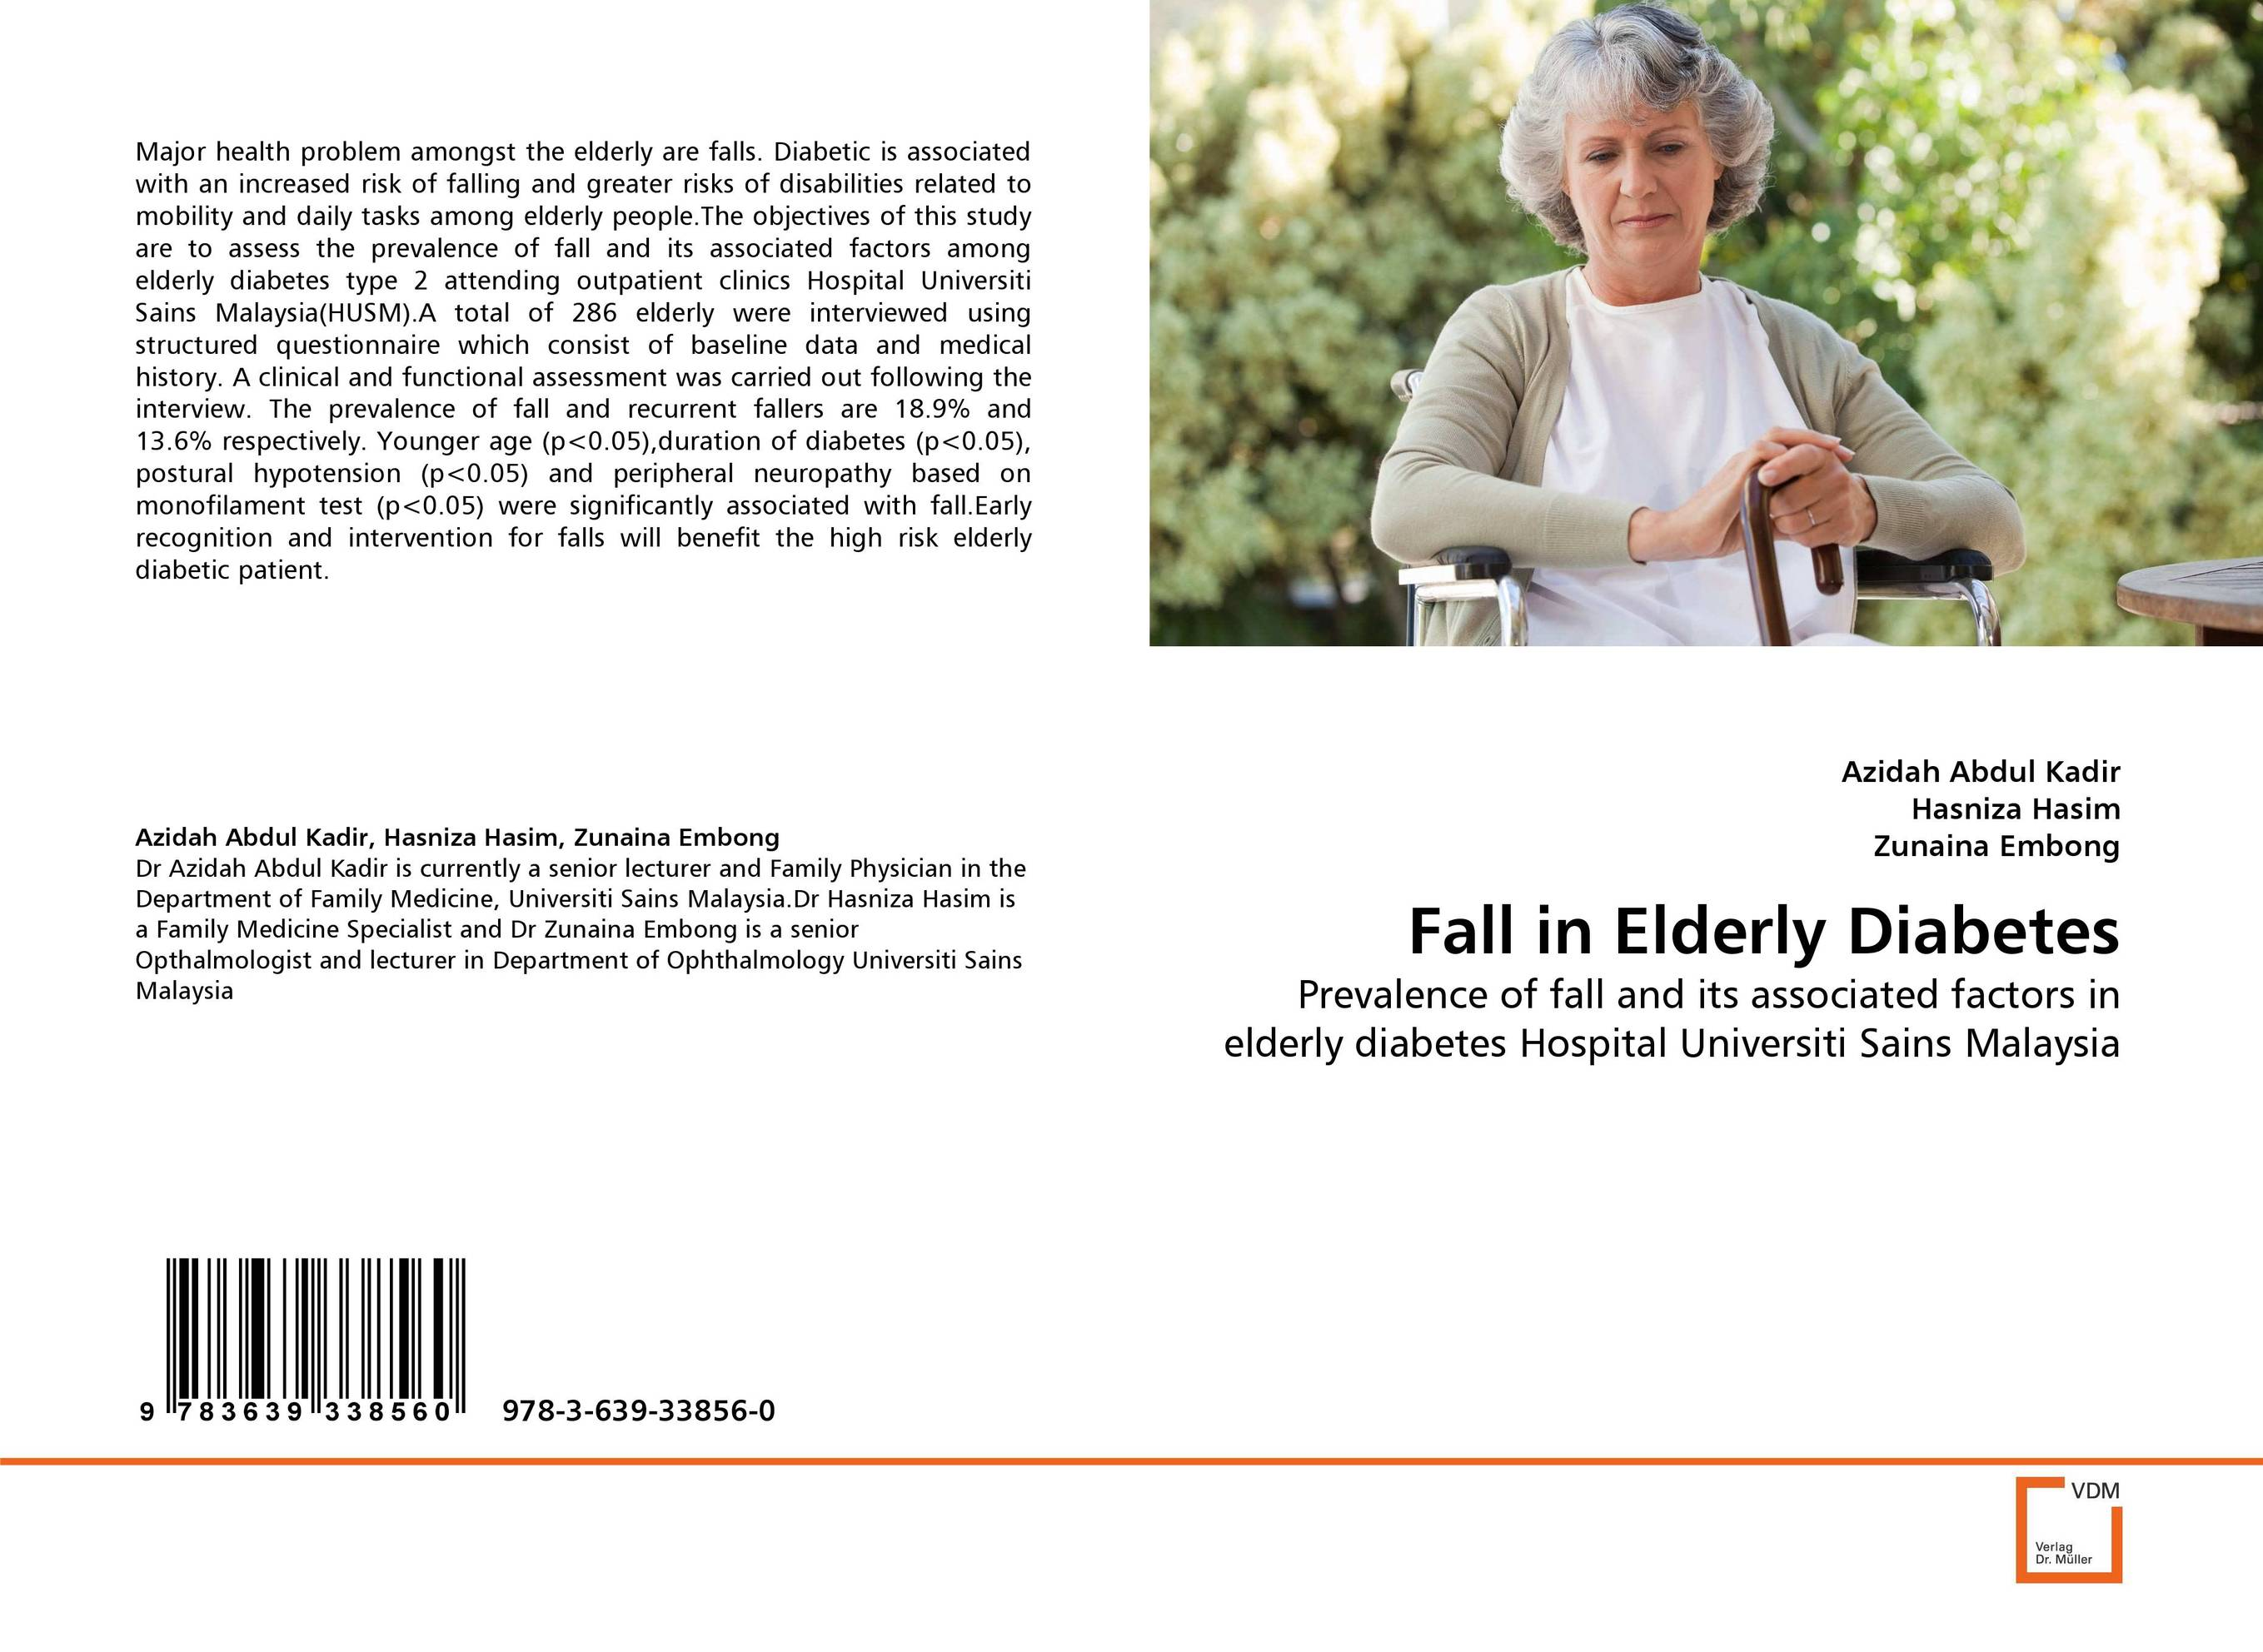 Fall in Elderly Diabetes prevalence of intestinal parasitosis among children